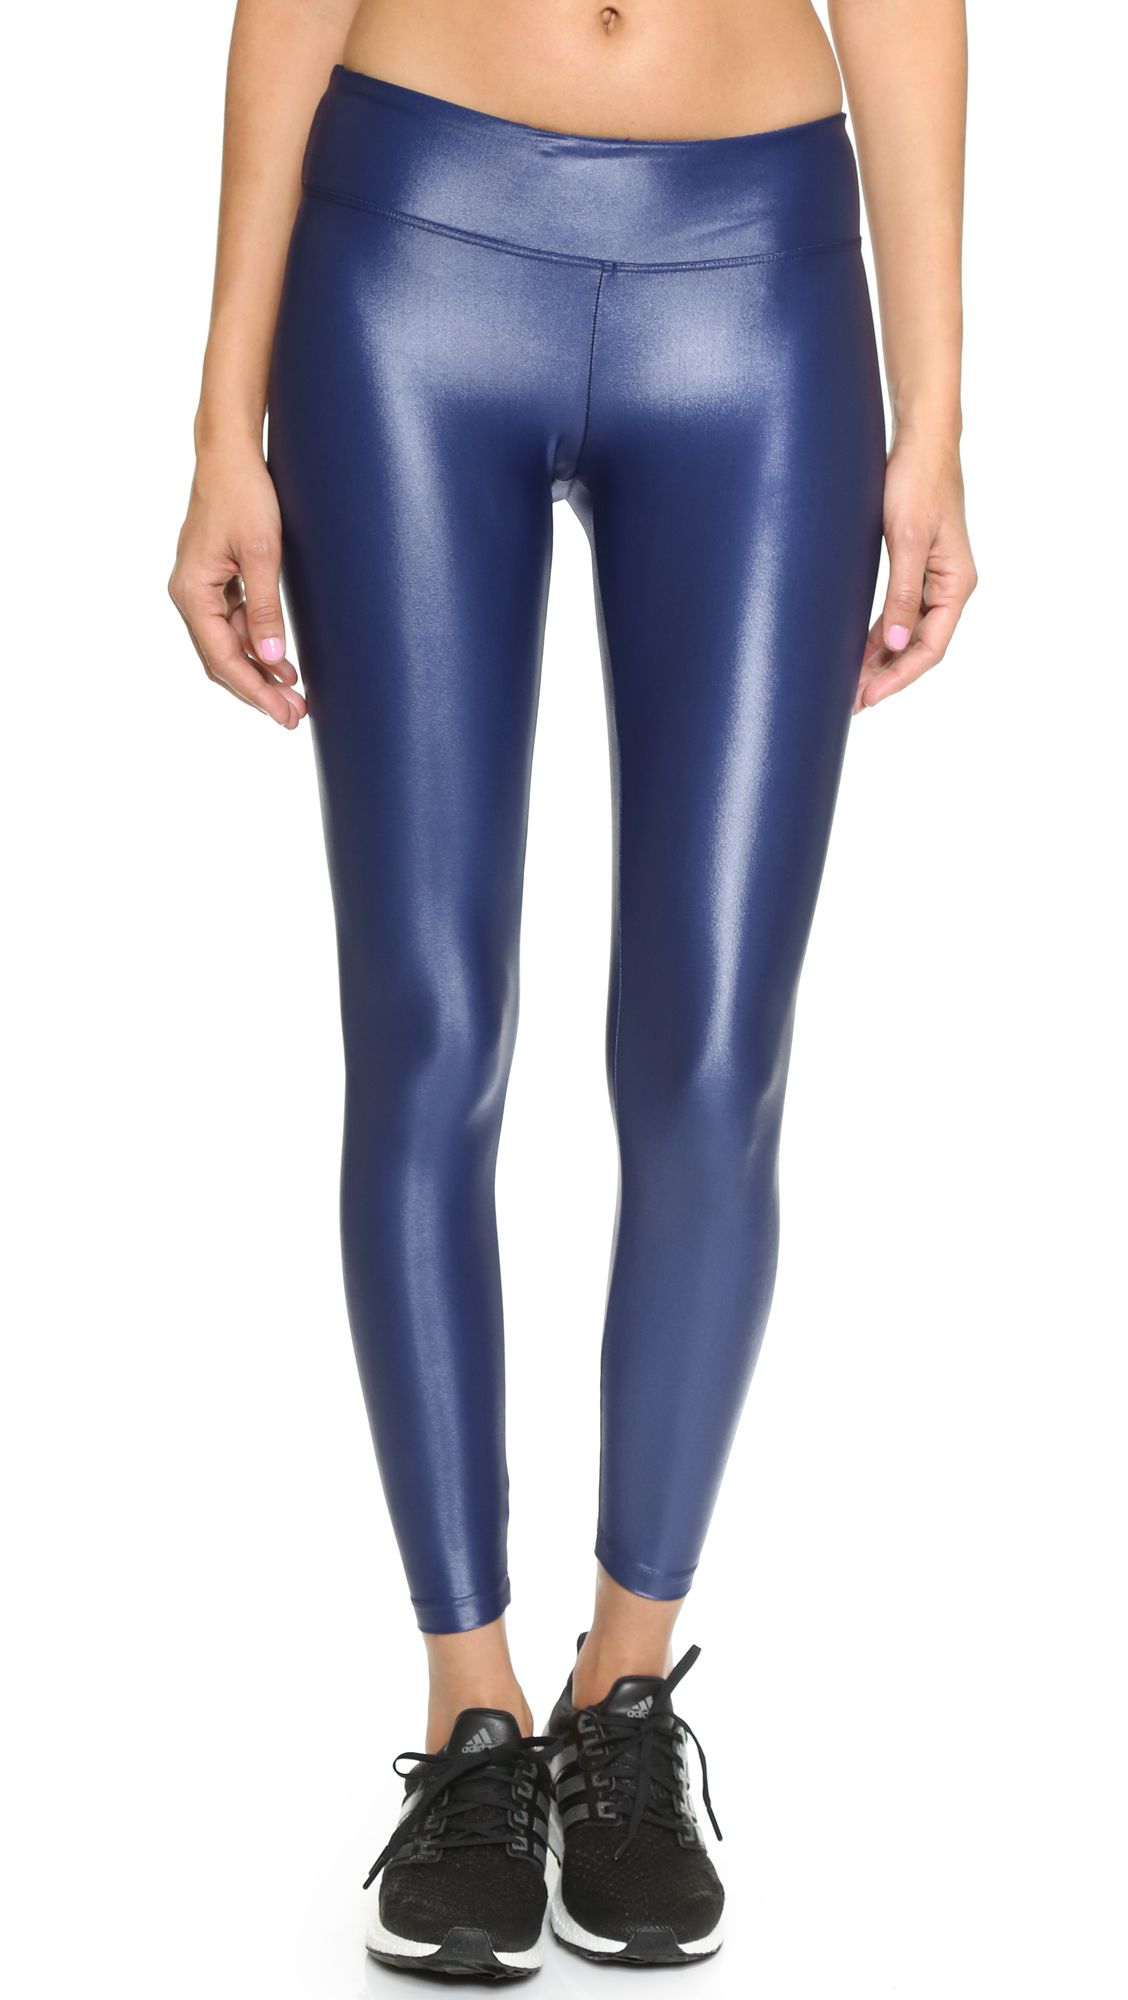 KORAL ACTIVEWEAR Shiny Metallic Active Legging | SHOPBOP